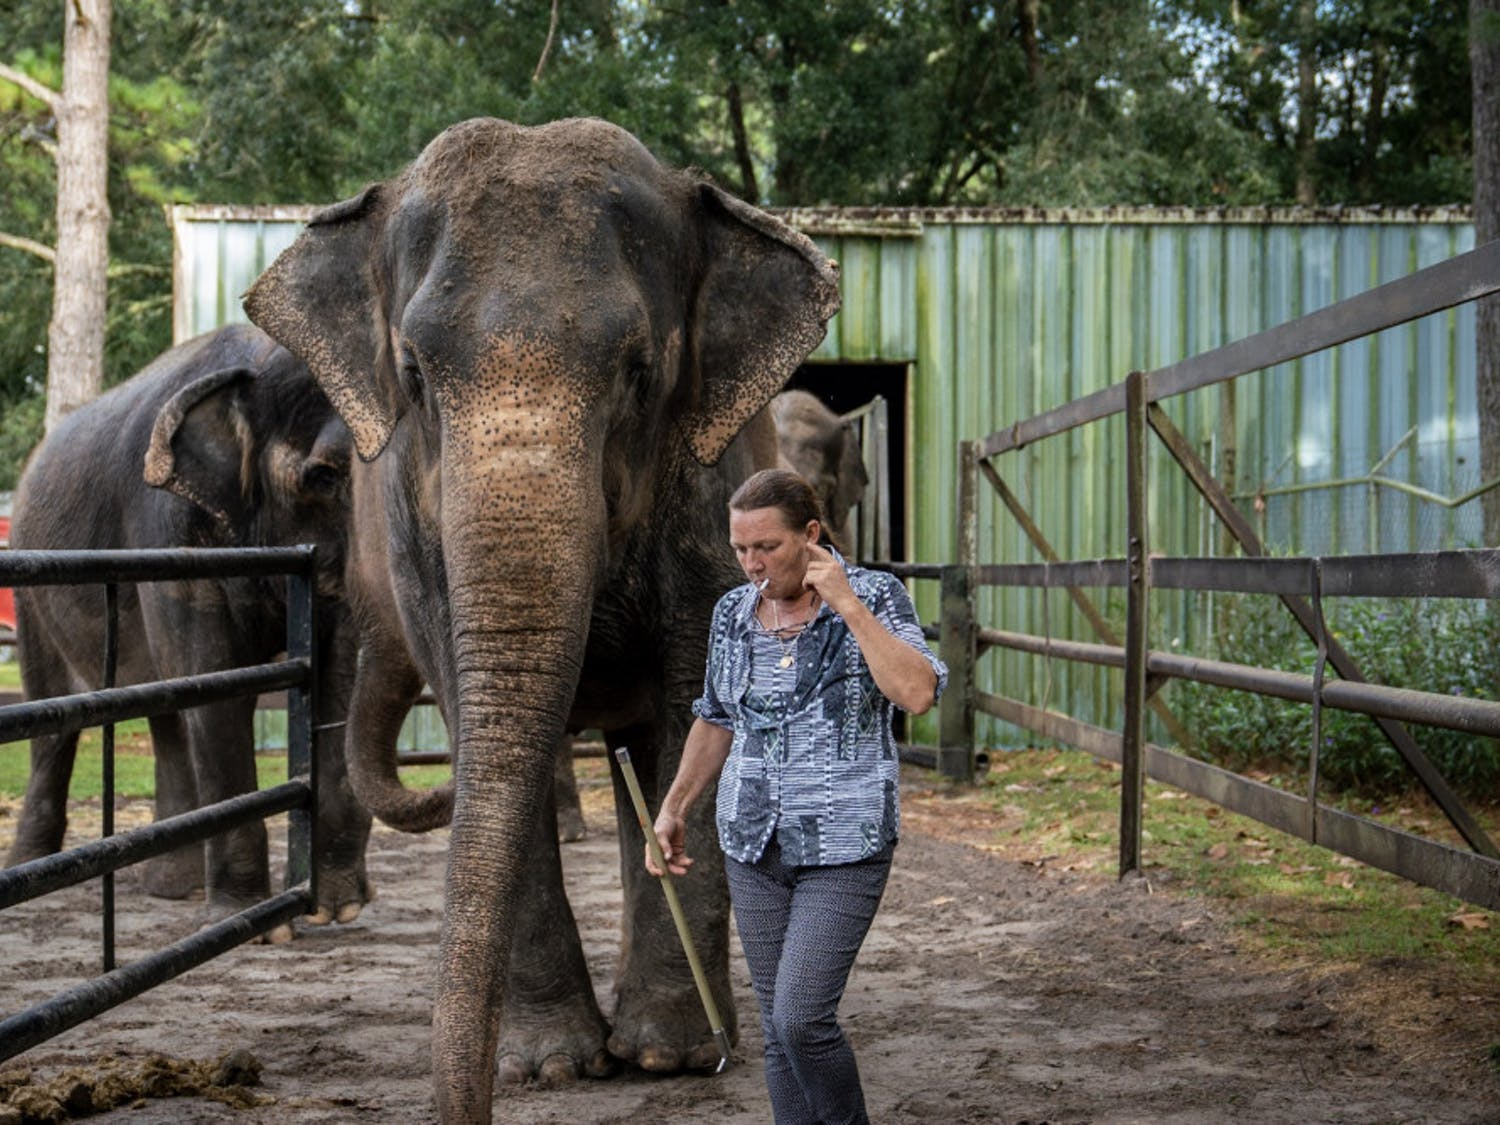 Patricia Zerbini, 54, the proprietor of Two Tails Ranch, guides several of her elephants to a paddock where she then answered questions about the animals. Elephant Appreciation Days were held at the ranch on Saturday and Sunday in order to raise awareness of elephant welfare efforts, as well as fundraising for their care.